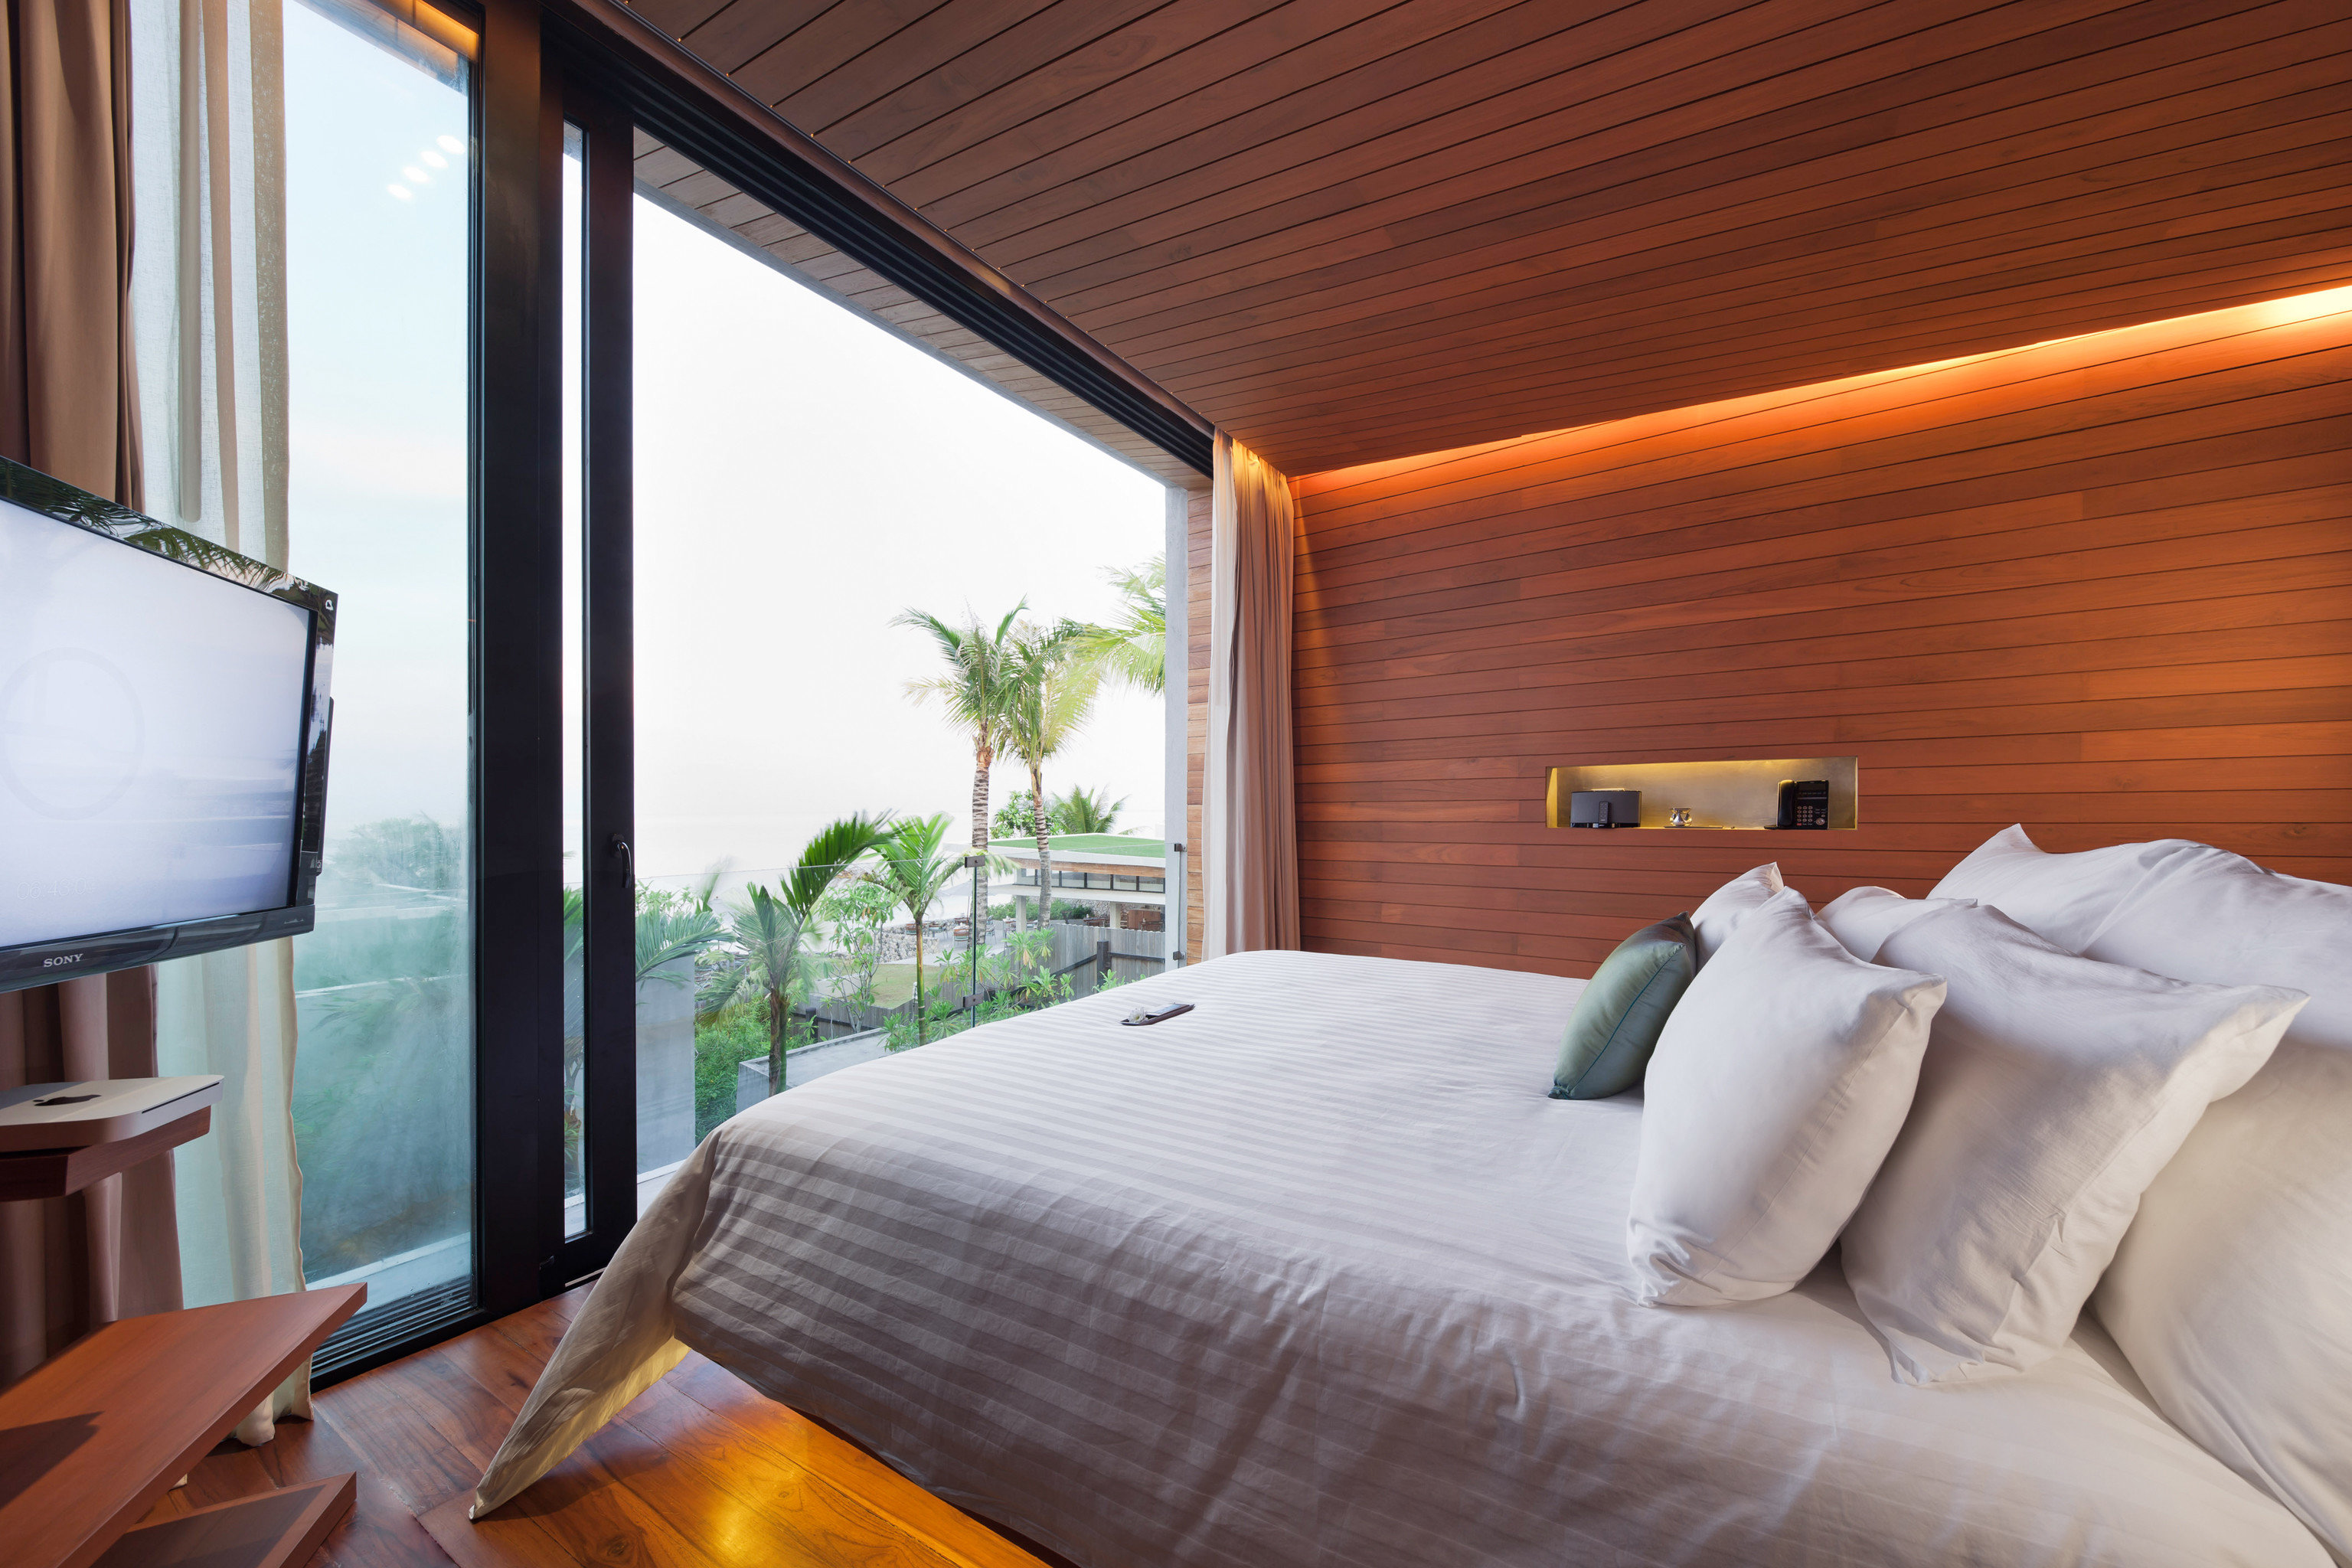 Beachfront Bedroom Modern Romantic Scenic views property Suite cottage Resort pillow Villa